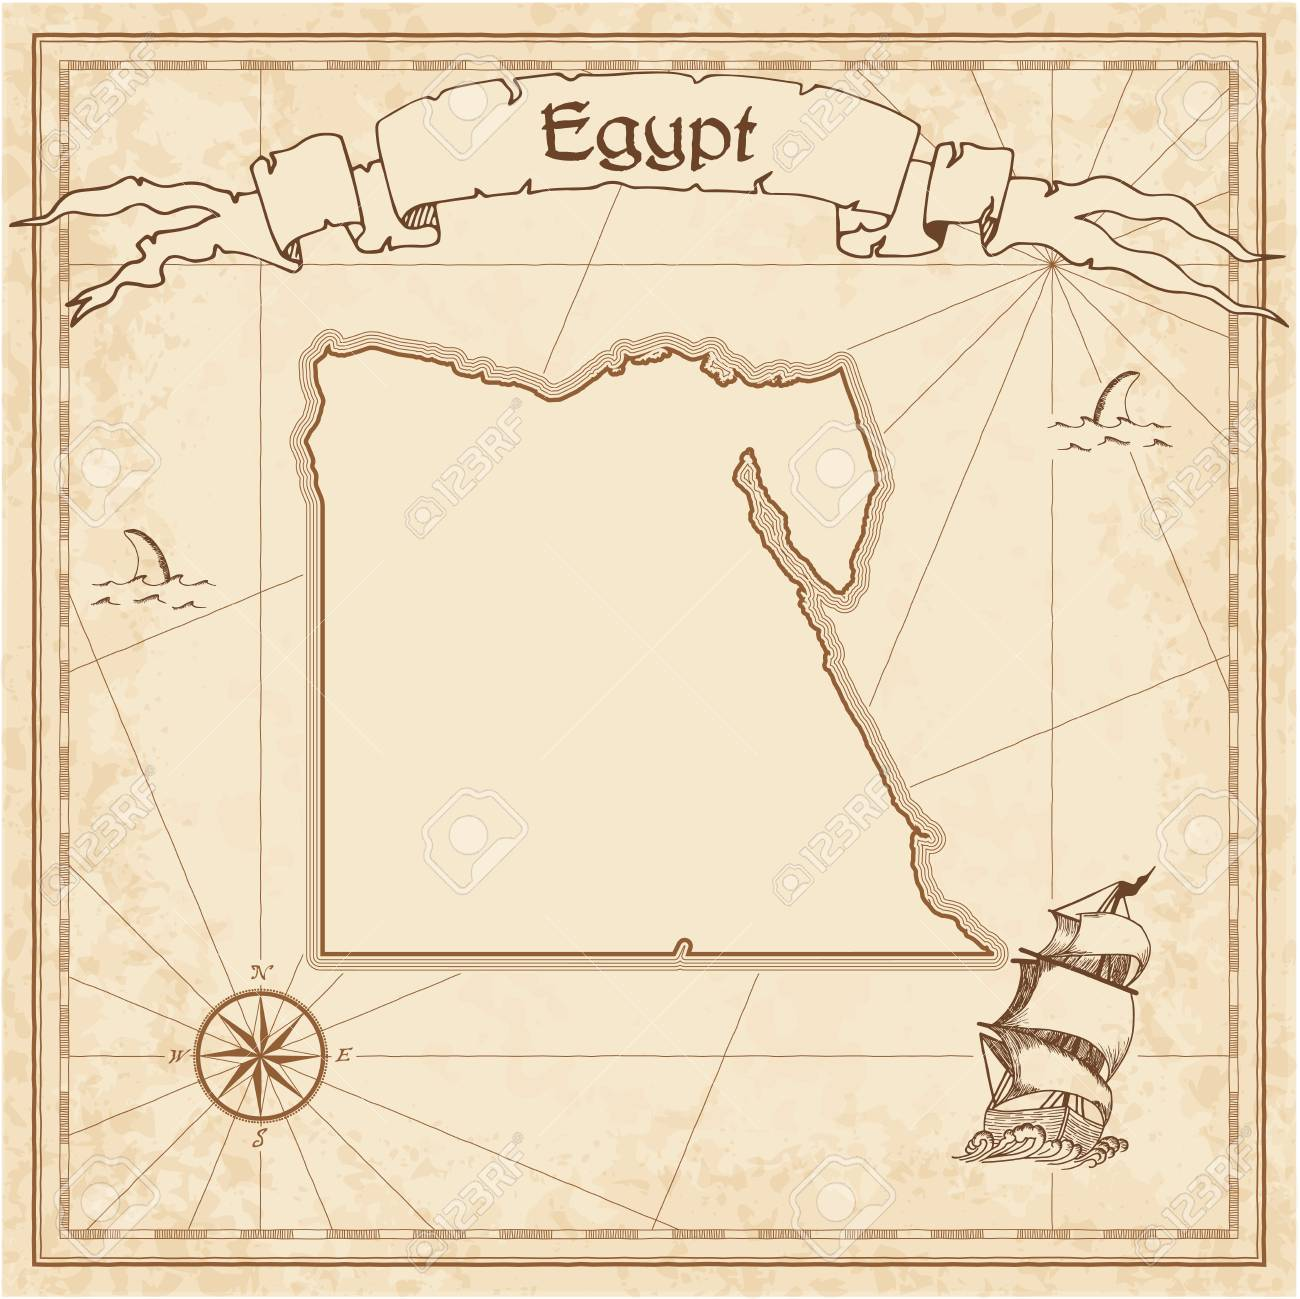 egypt old treasure map sepia engraved template of pirate map